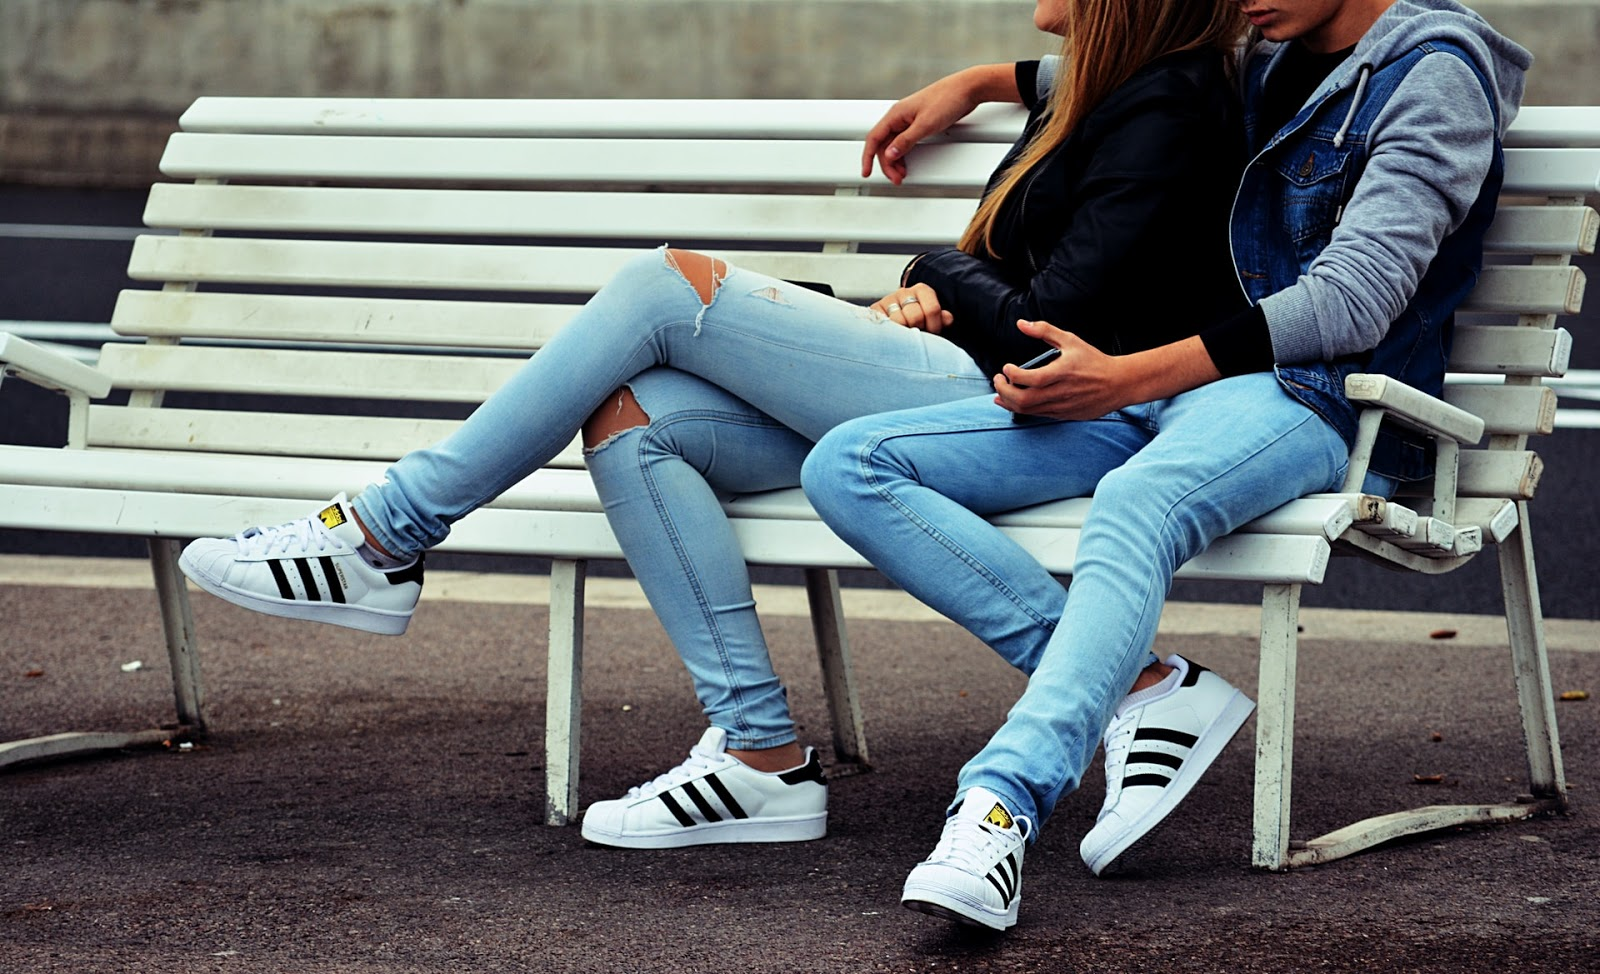 A couple sitting on a bench.